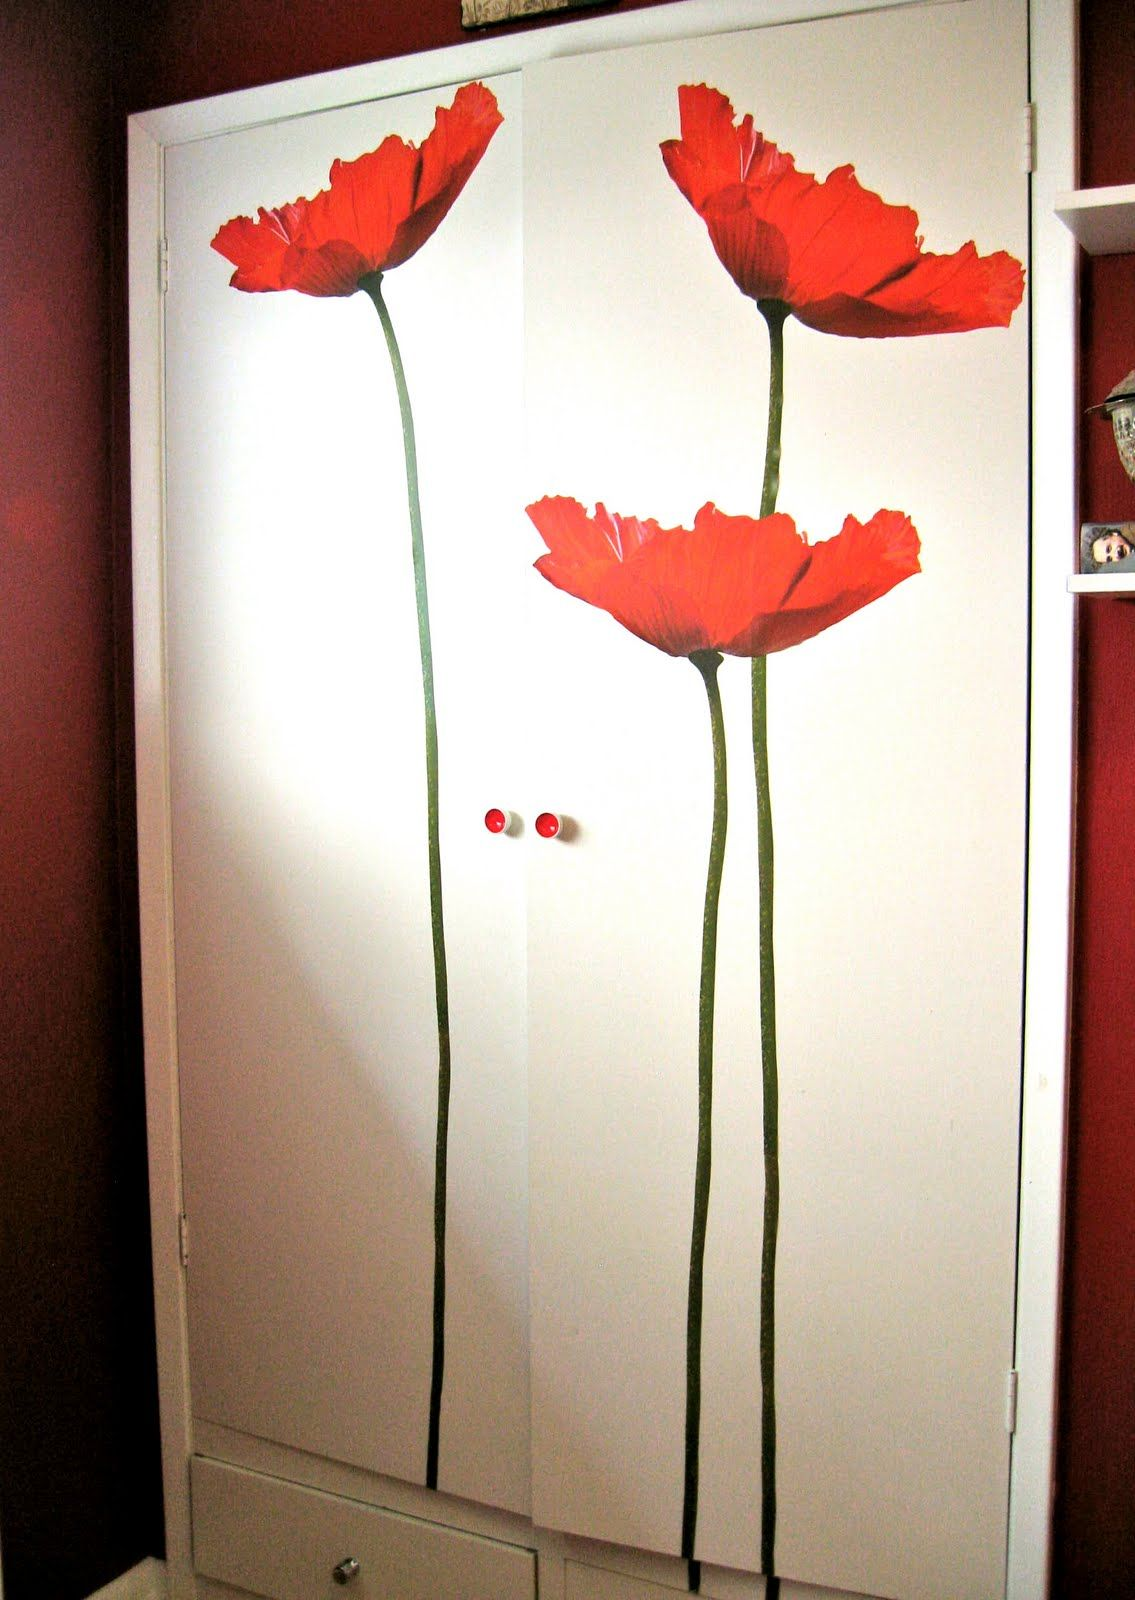 Giant flower wall decals transforamation project using wall giant flower wall decals transforamation project using wall decoration stickers and door amipublicfo Gallery